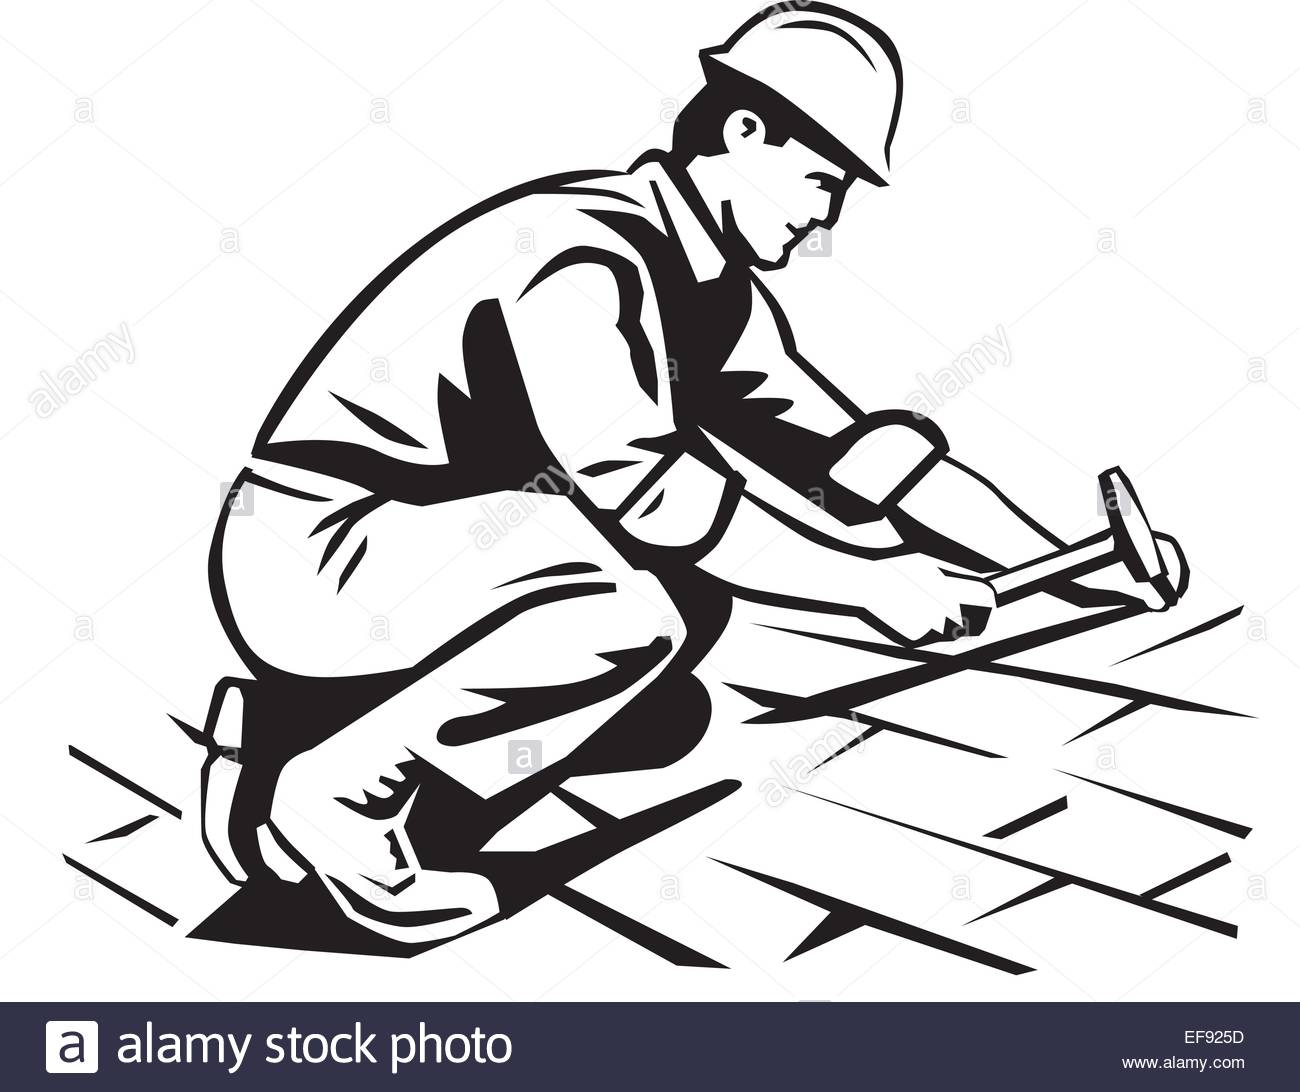 A Man Working Construction On A Roof Stock Photo, Royalty Free.